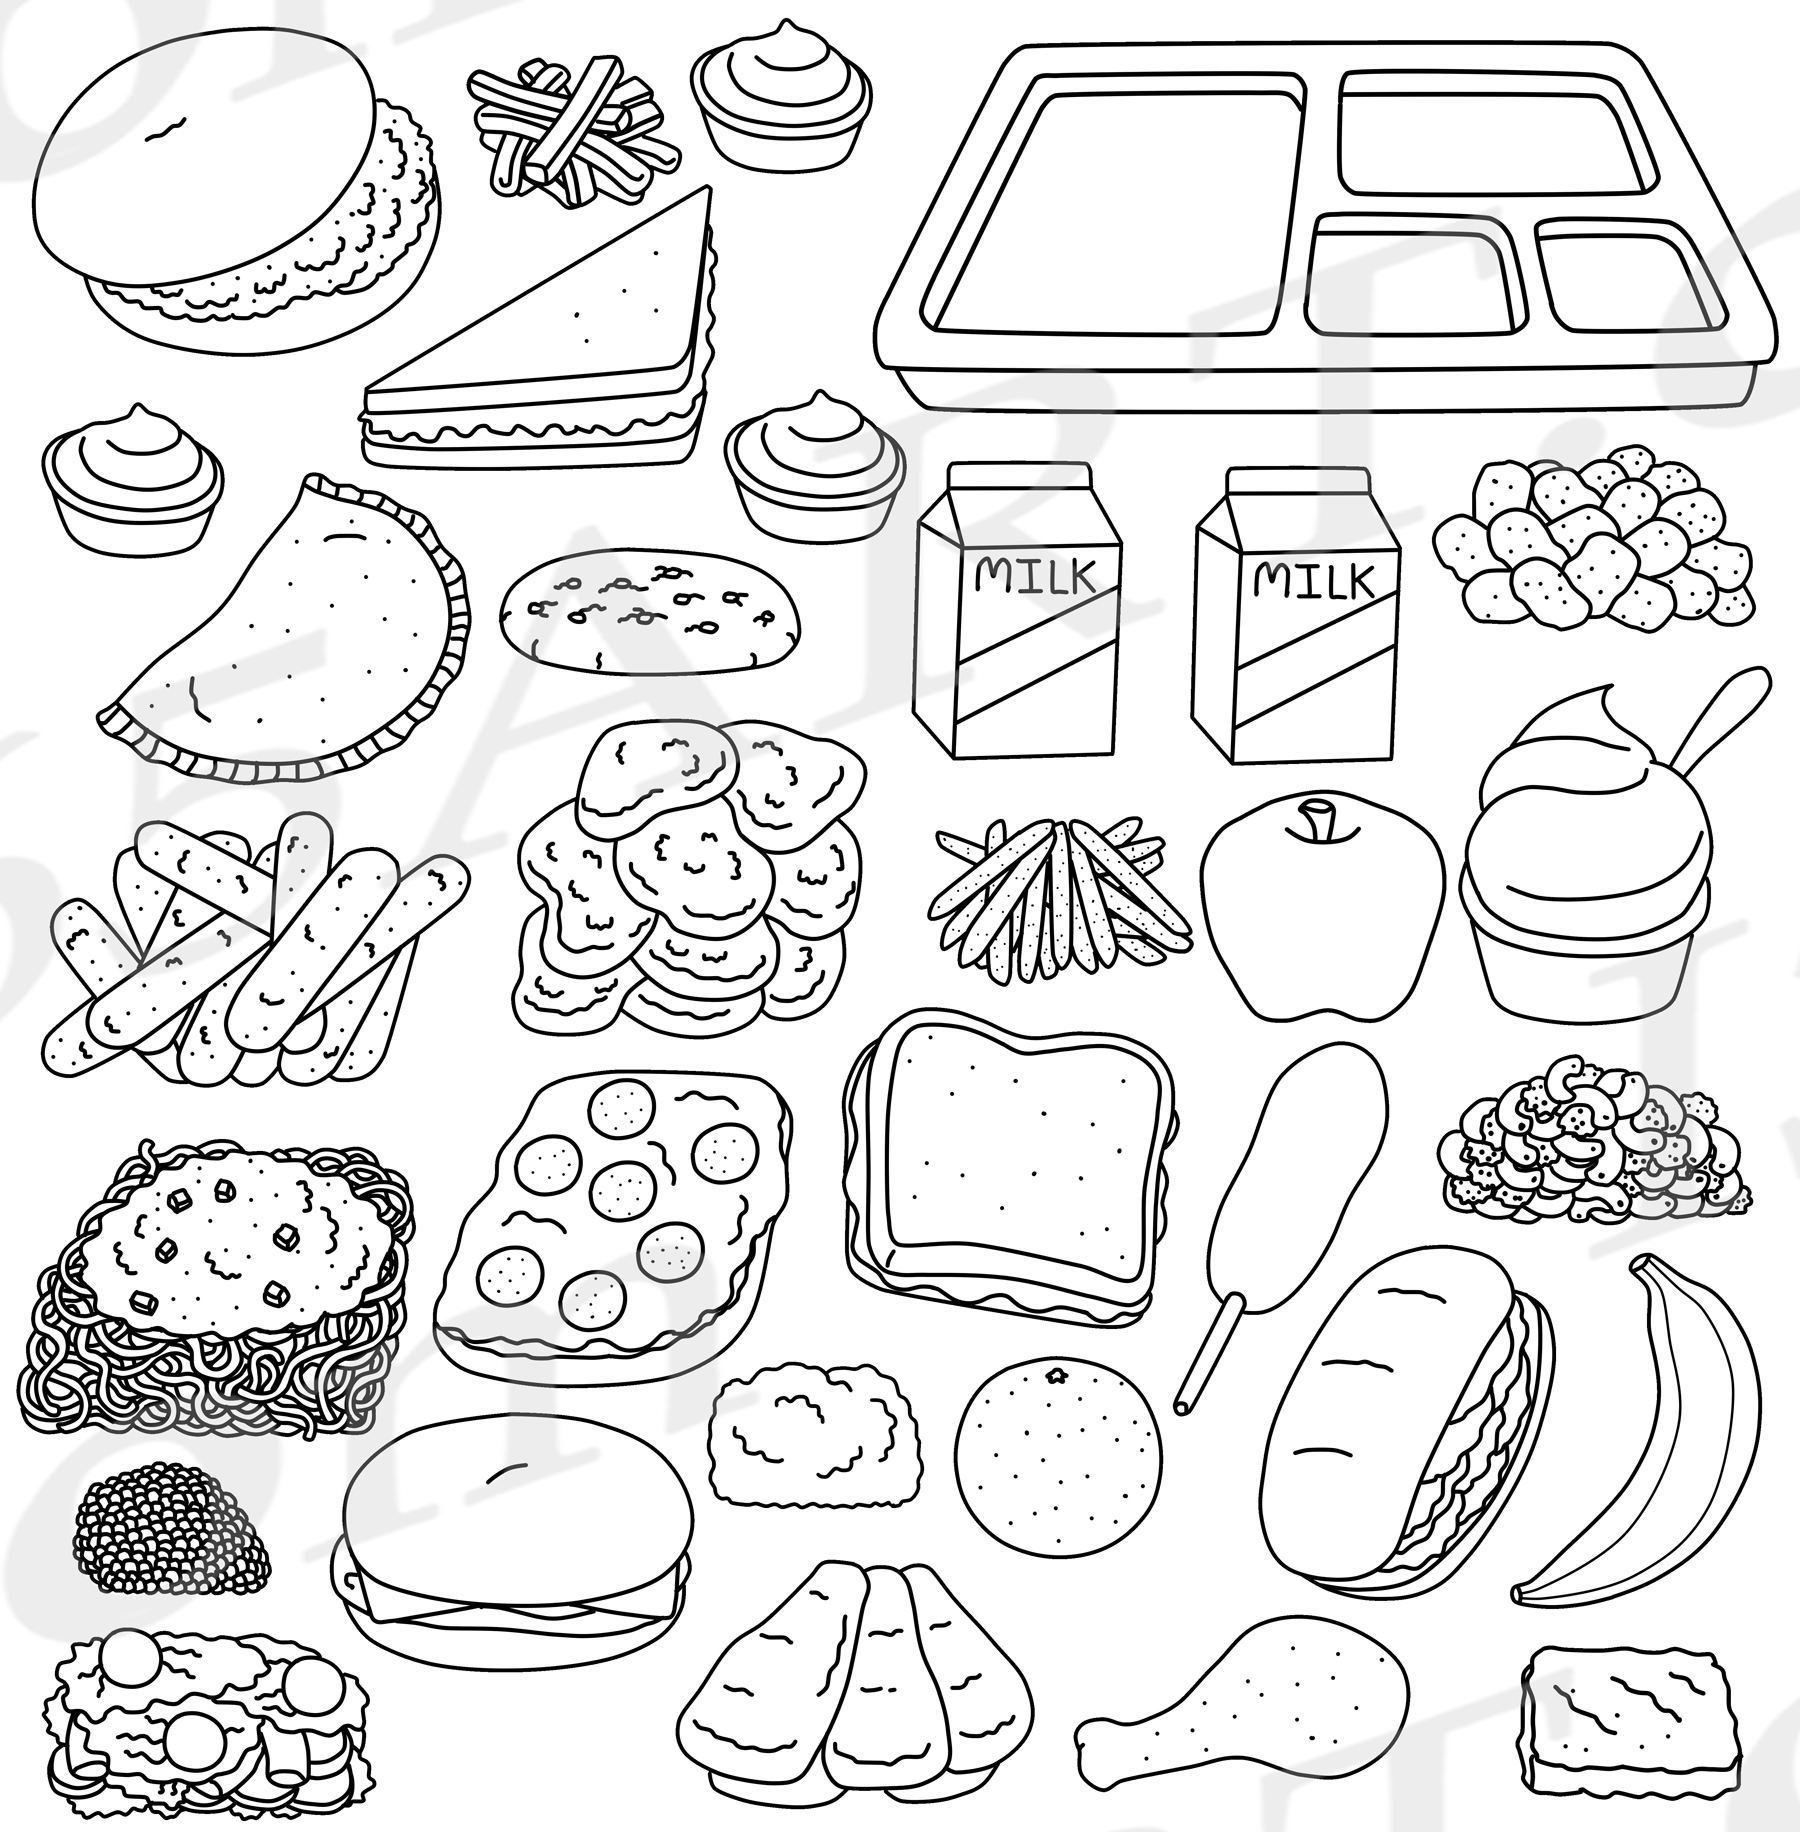 lunch food coloring pages lunch box coloring page free download on clipartmag lunch food pages coloring